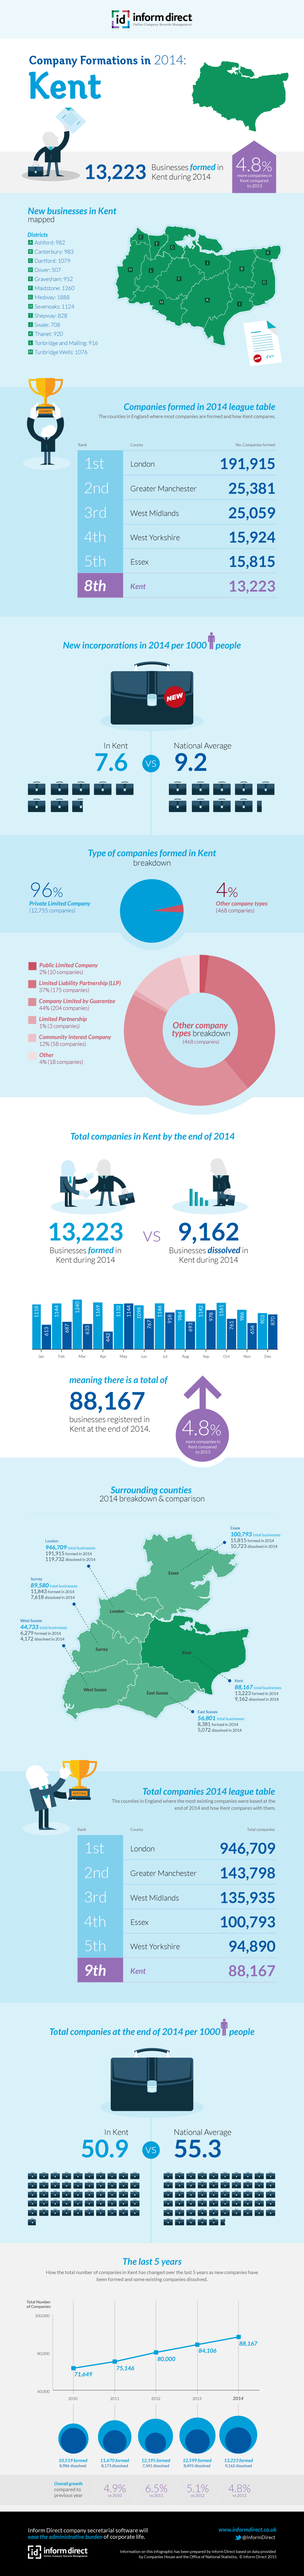 Inform Direct - Company Formations in Kent 2014 Infographic